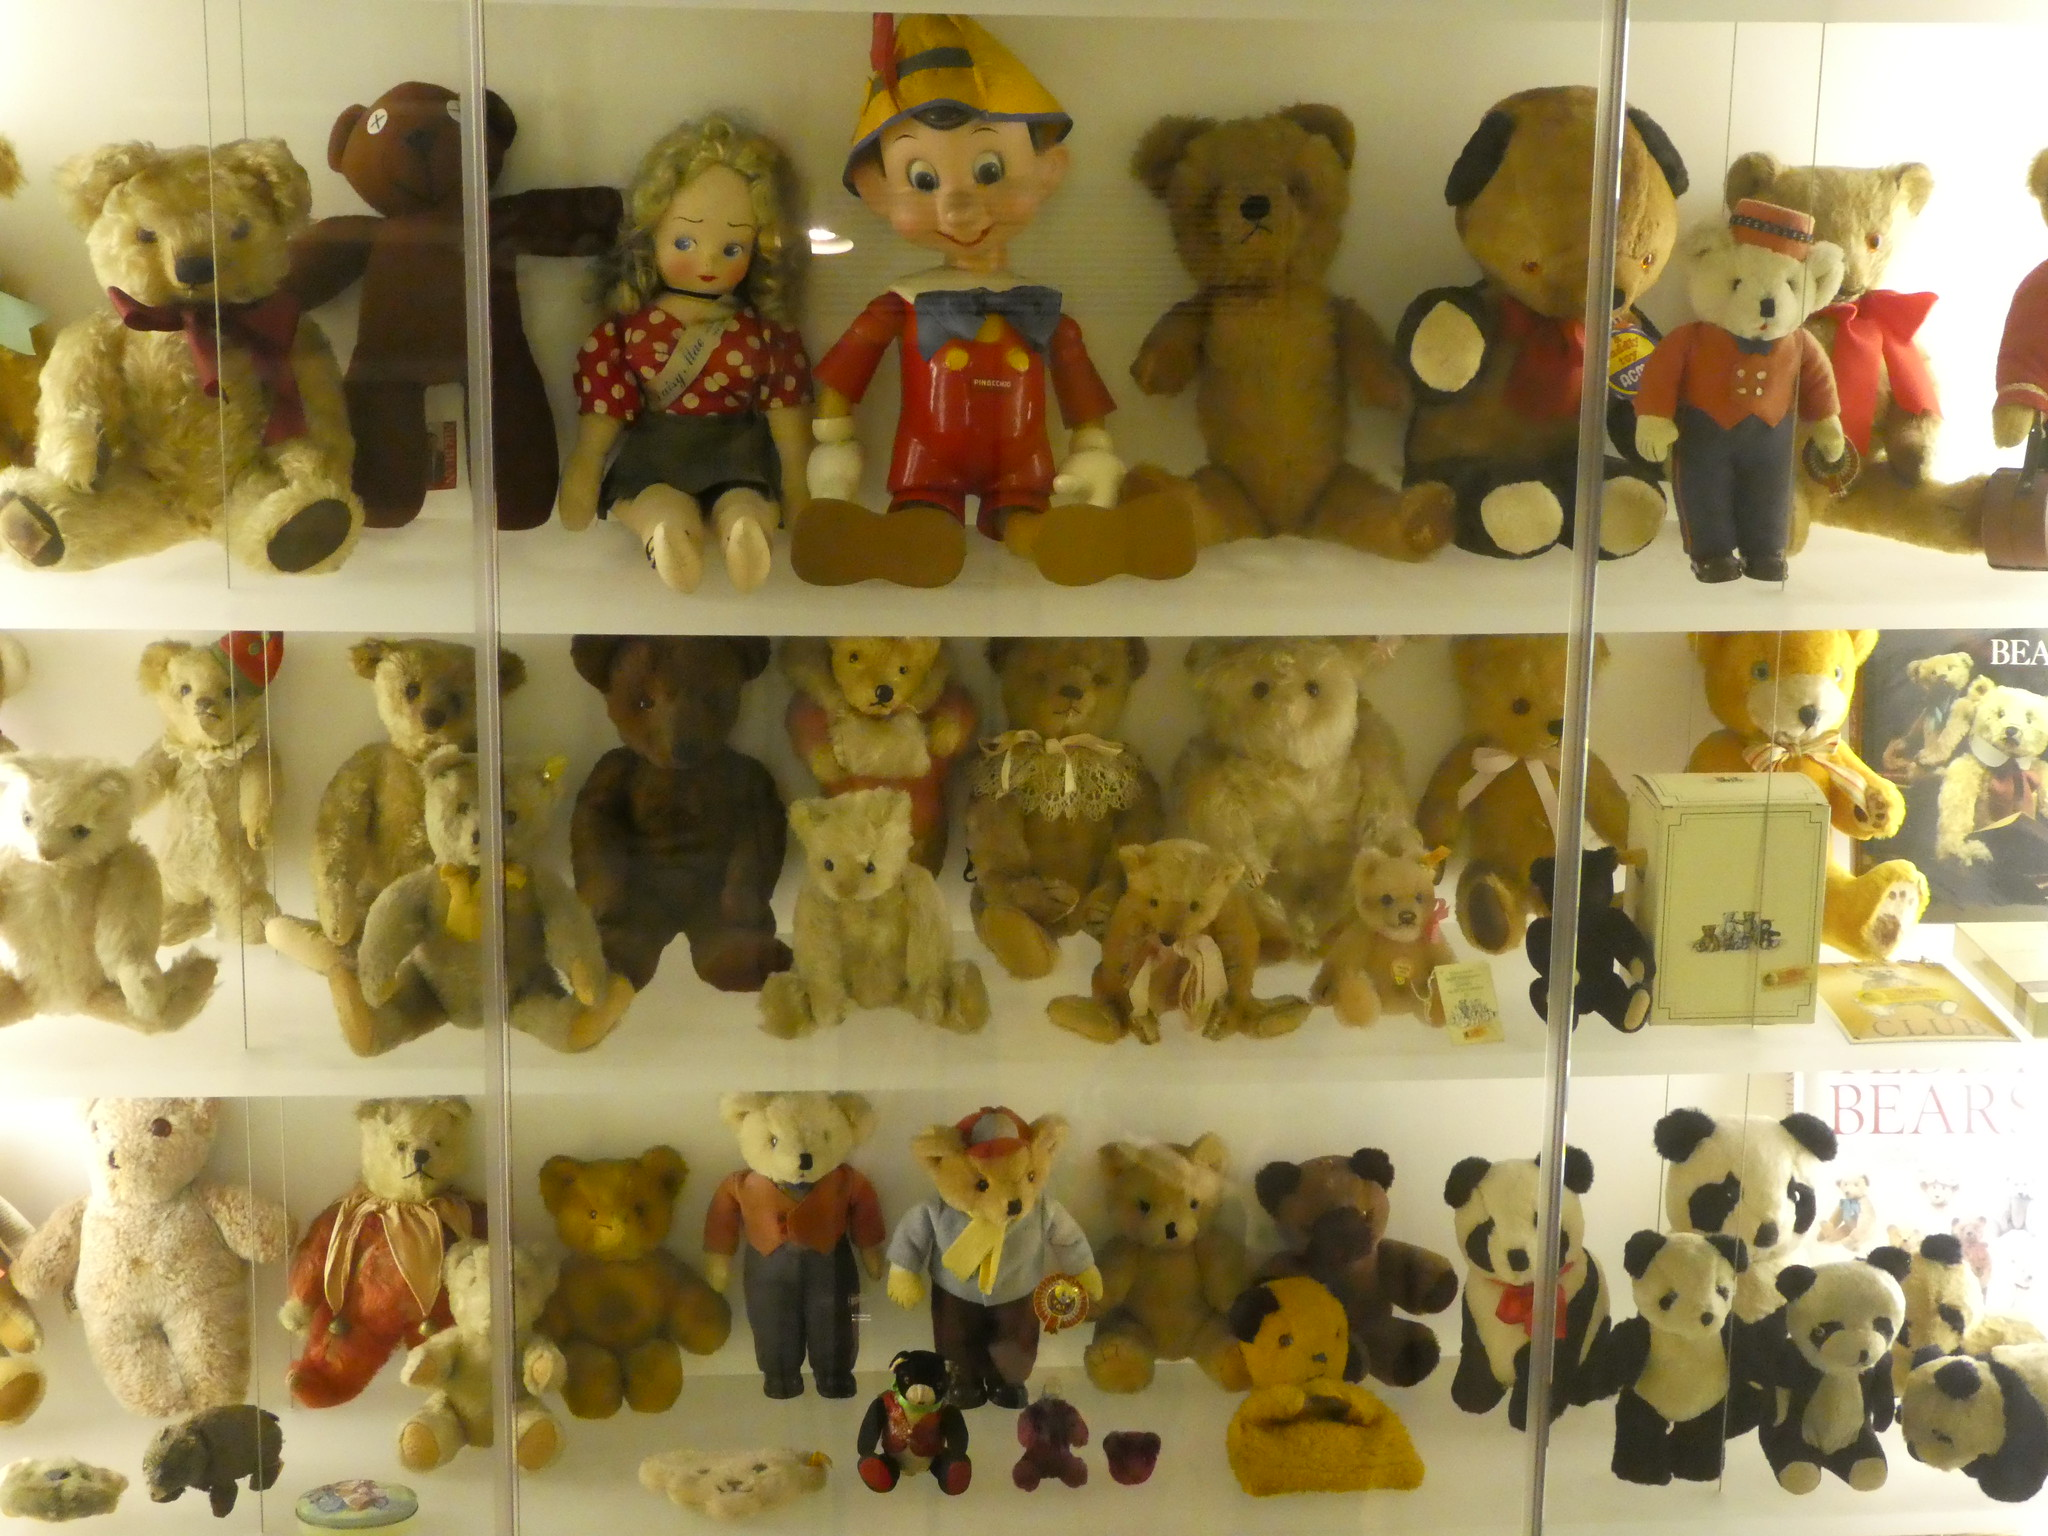 The MINT Museum of Toys, Singapore